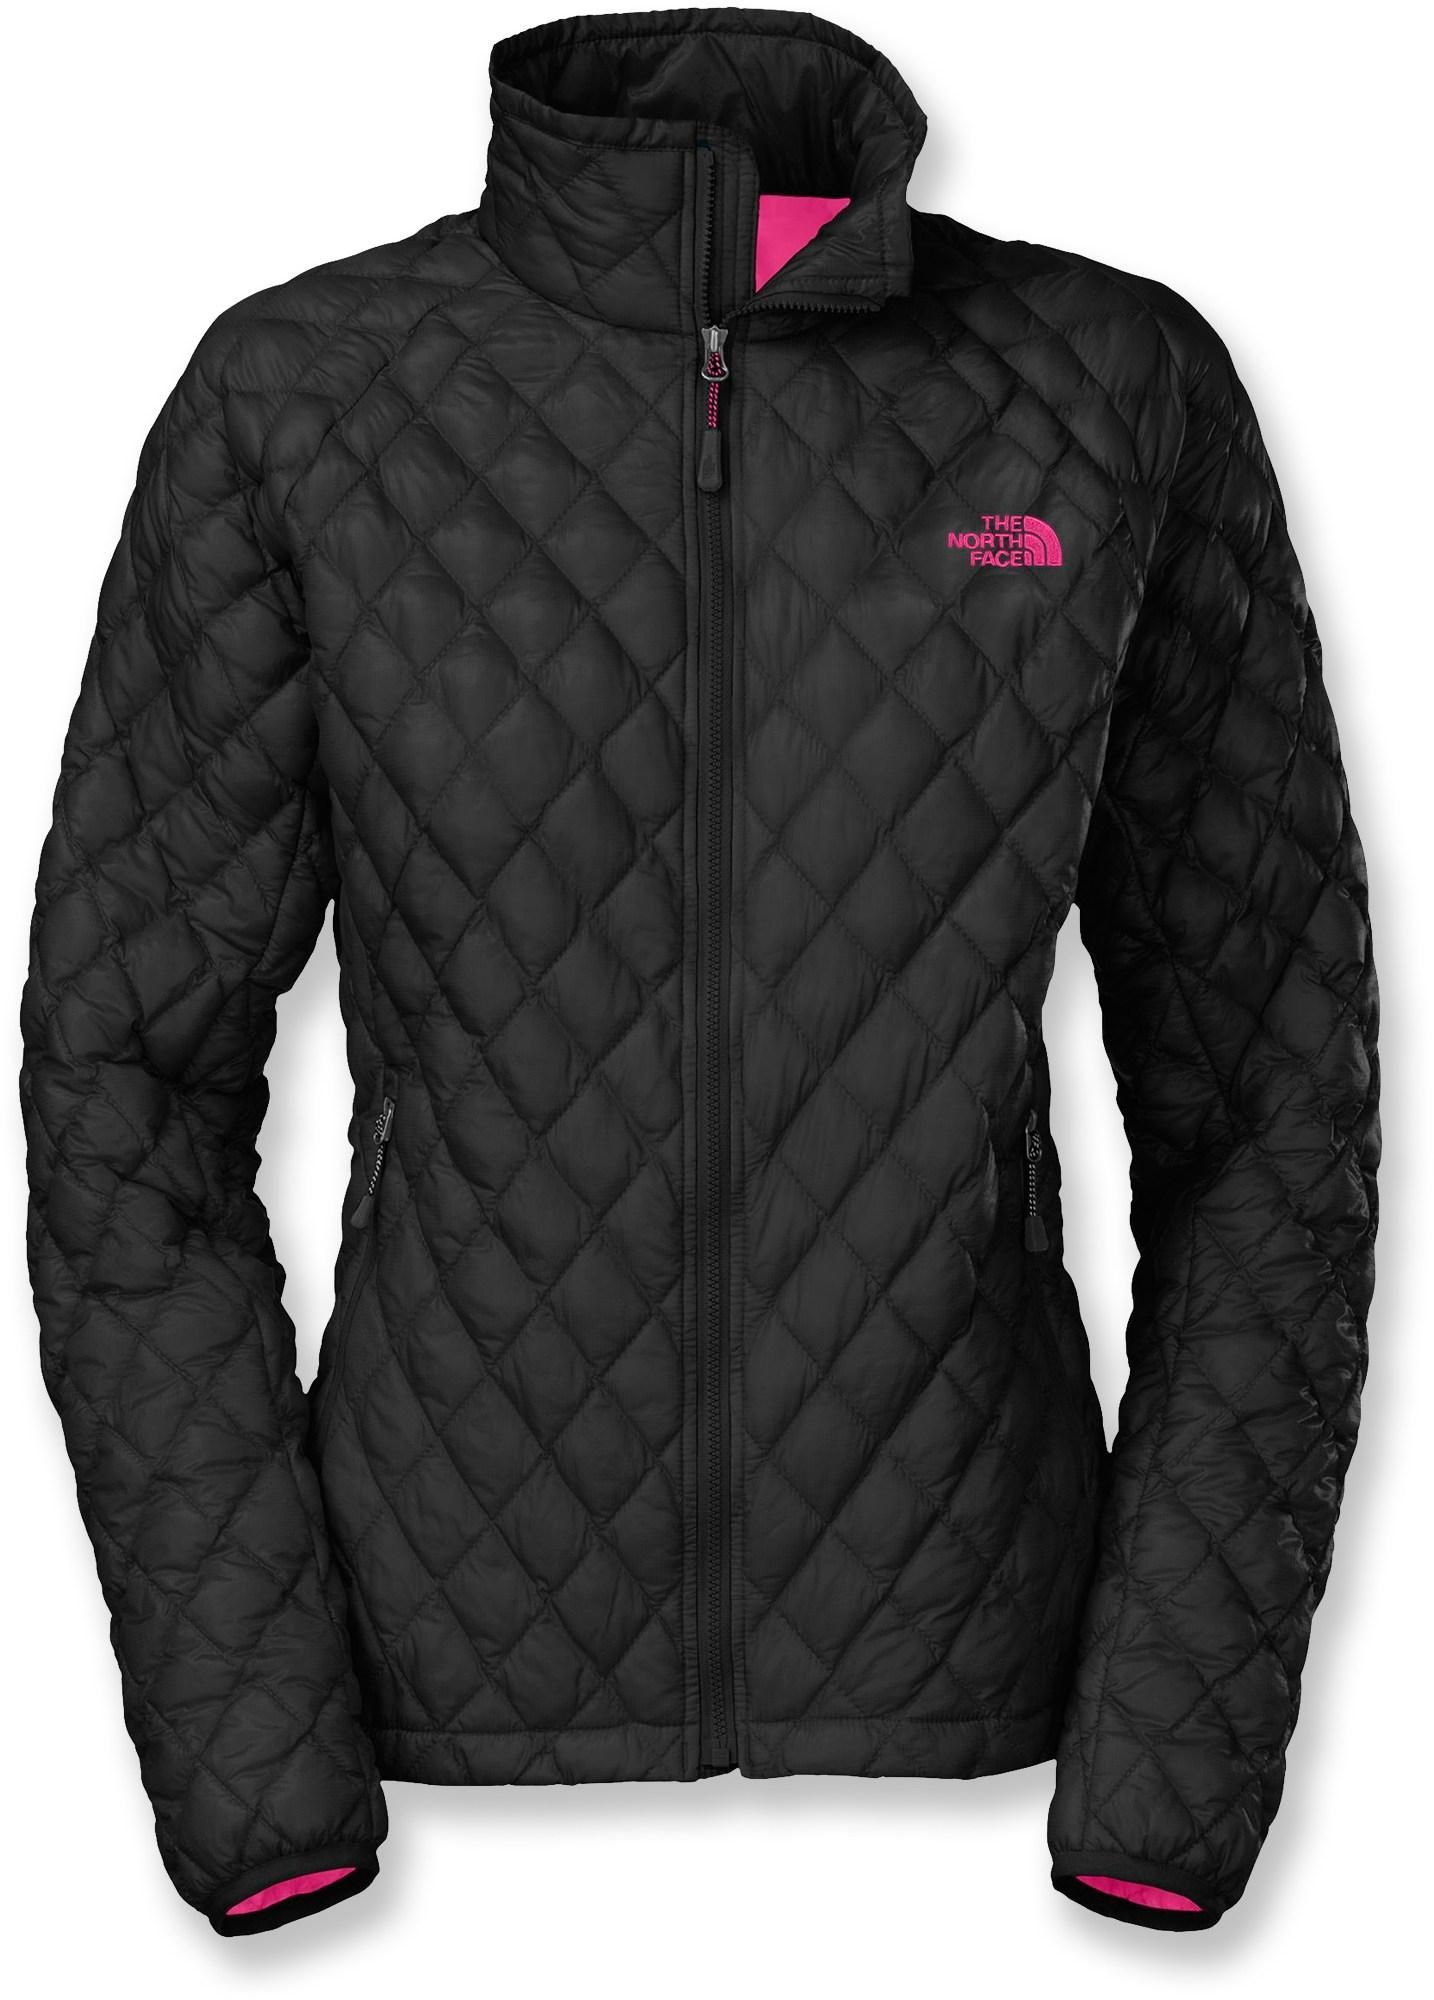 The North Face ThermoBall Full-Zip Jacket - Women's | REI ...